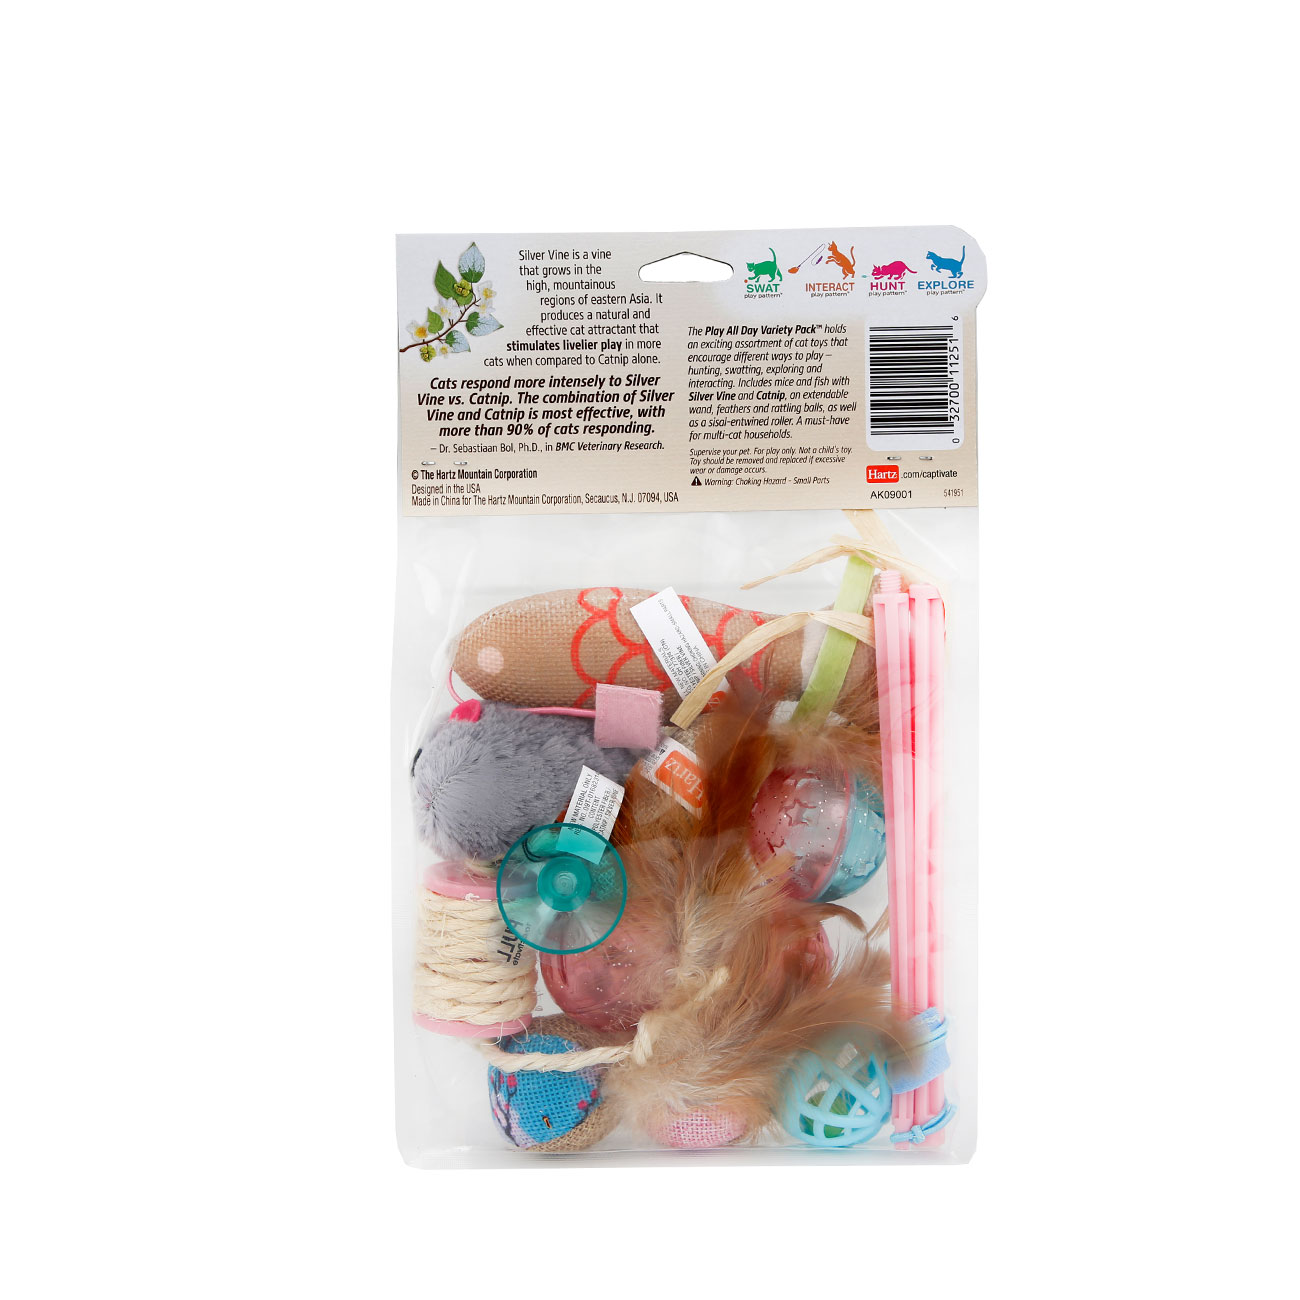 Hartz captivate silver vine cat toy. Variety pack. Back of package. Hartz SKU#3270011251